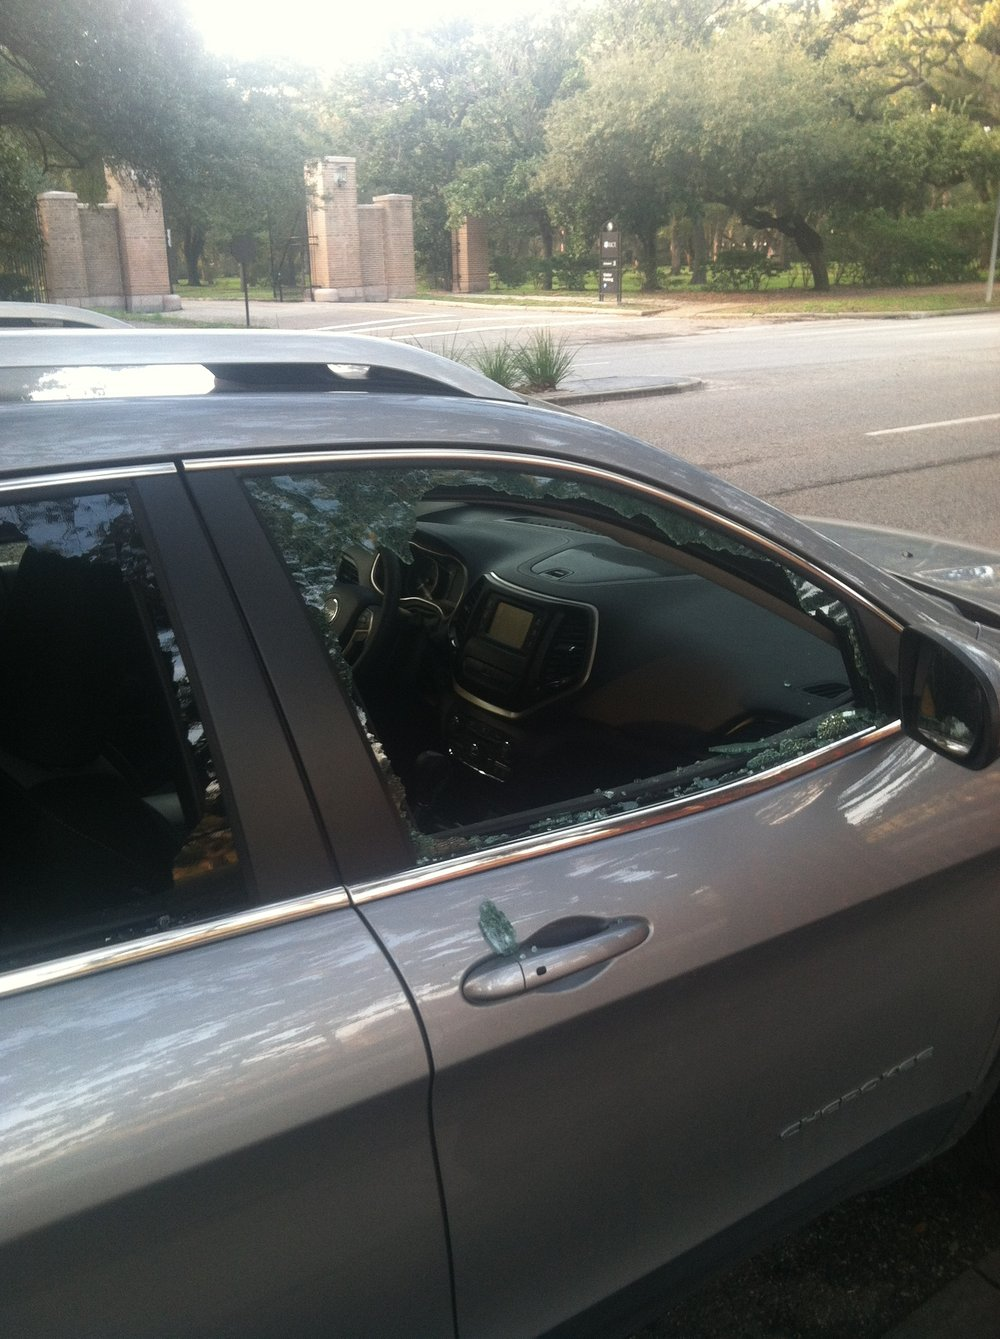 My car and its busted windows. OUCH...